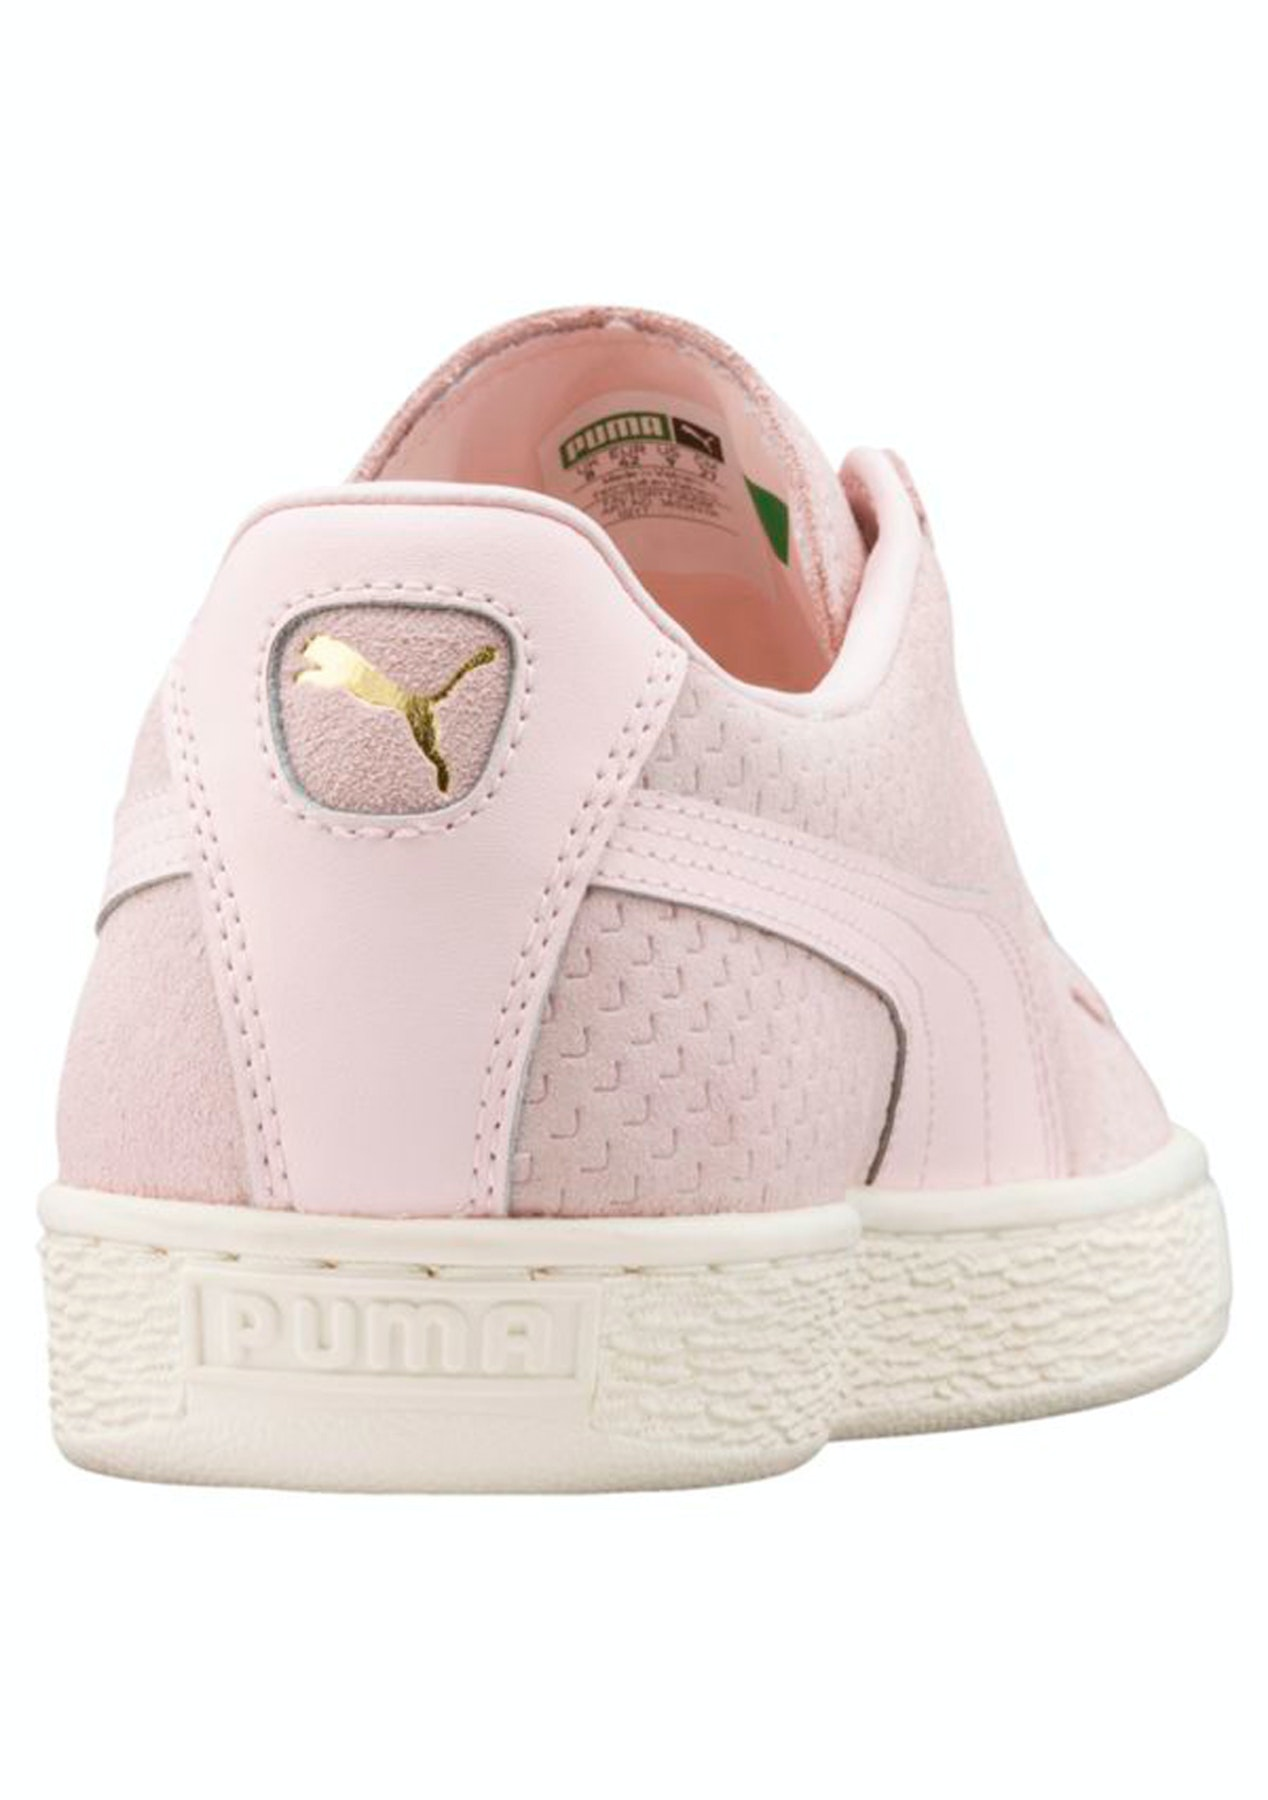 98a3d10a112 Puma Womens - Suede Classic Perforation Pearl - Puma Womens   Kids Up to 60%  Off - Onceit